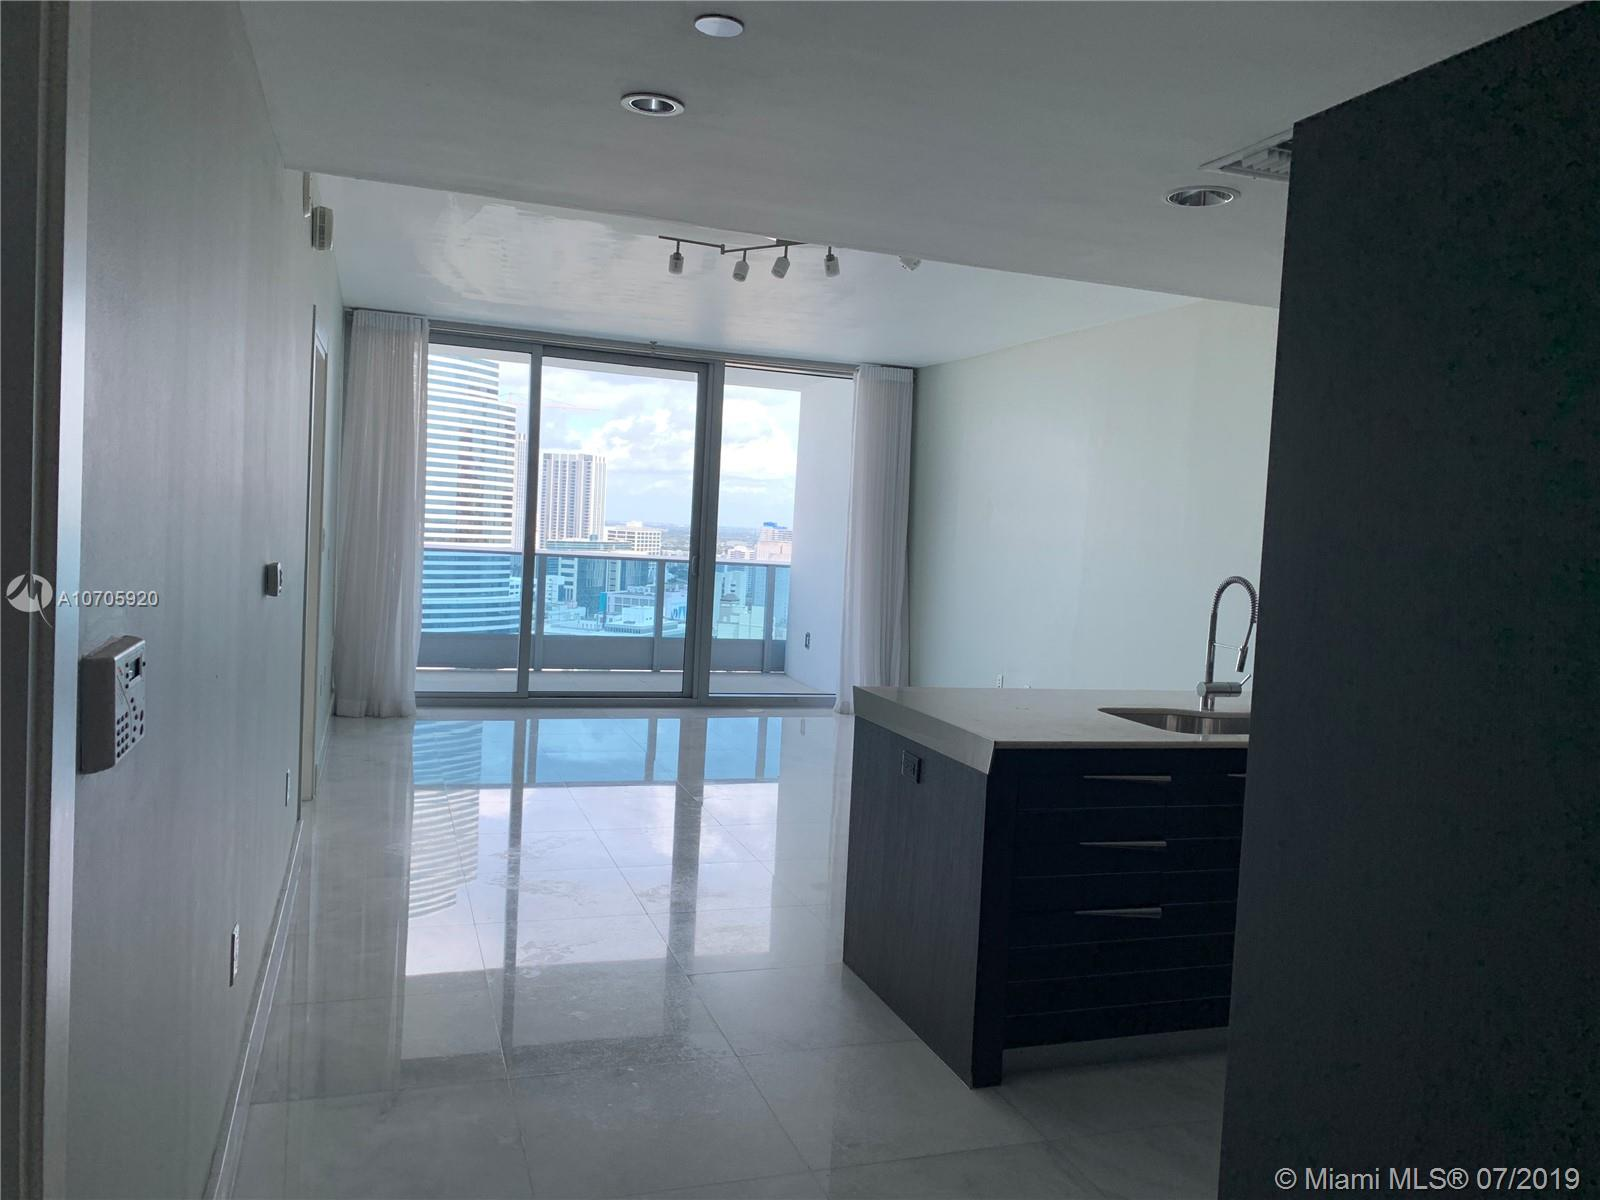 200 Biscayne blvd way, 3114 - Miami, Florida